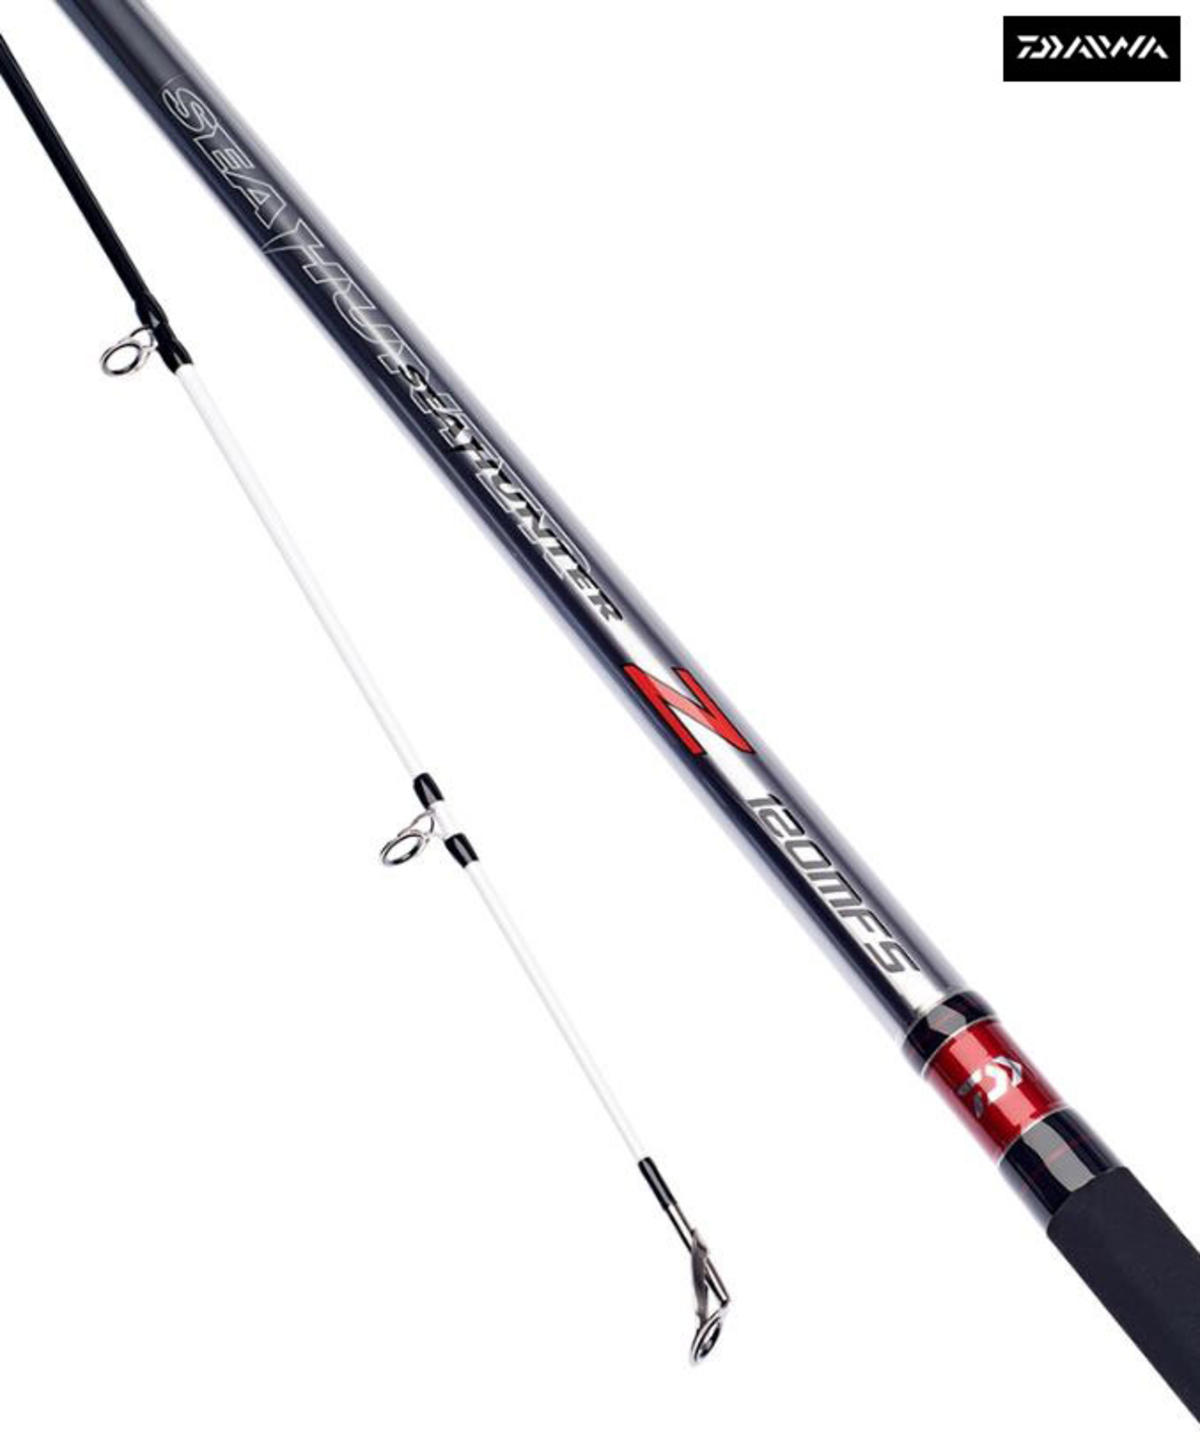 New Daiwa Seahunter Z Surf / Beach Fishing Rods - All Models